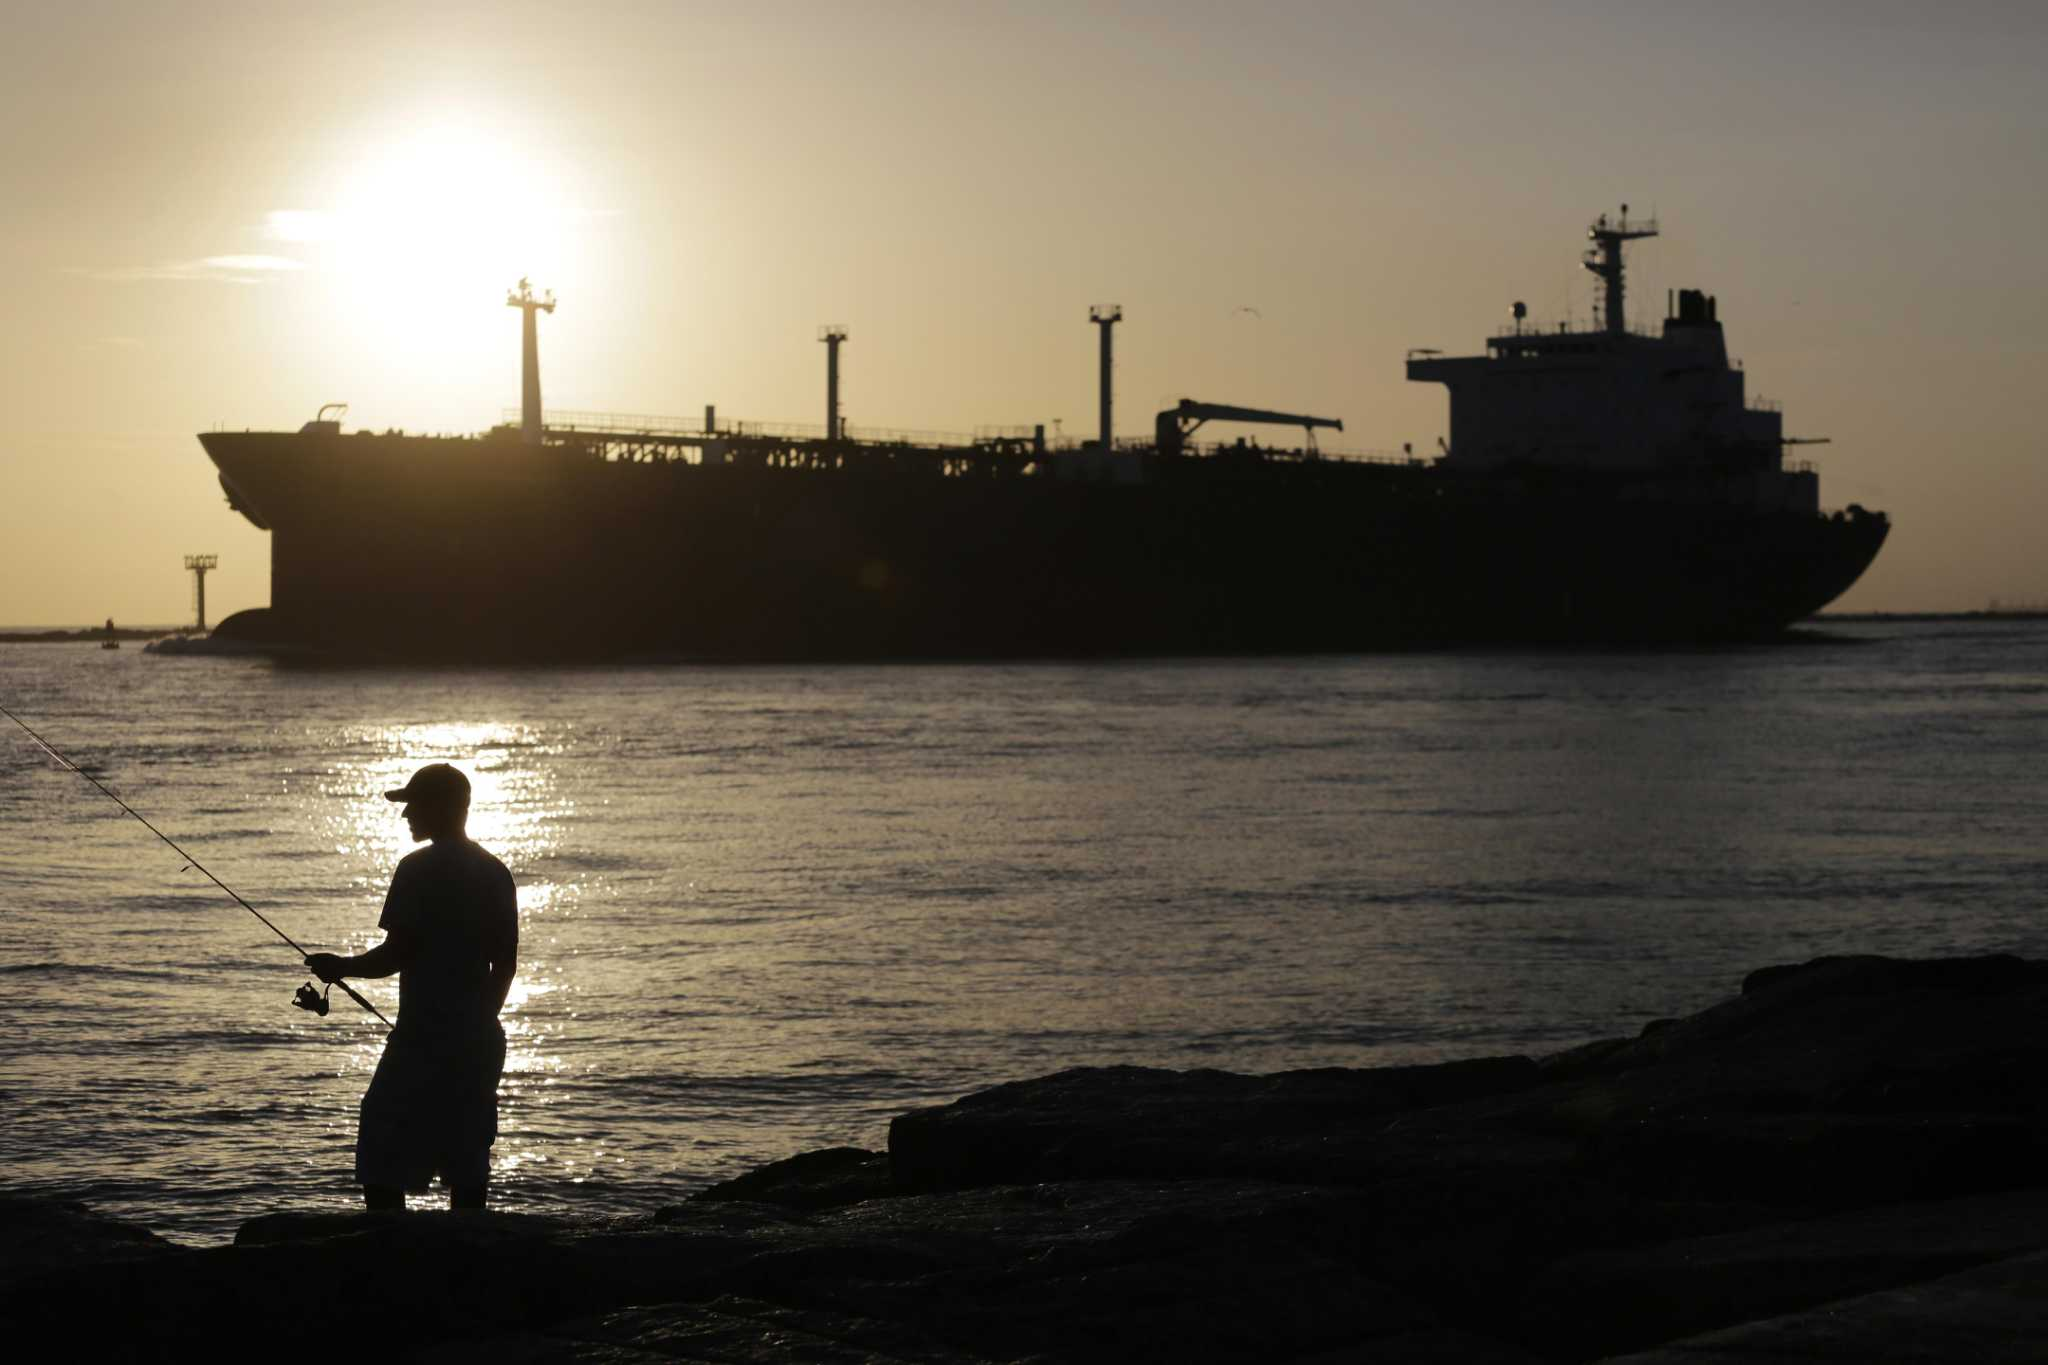 Oil trading in U.S. Gulf dries up as tanker rates skyrocket